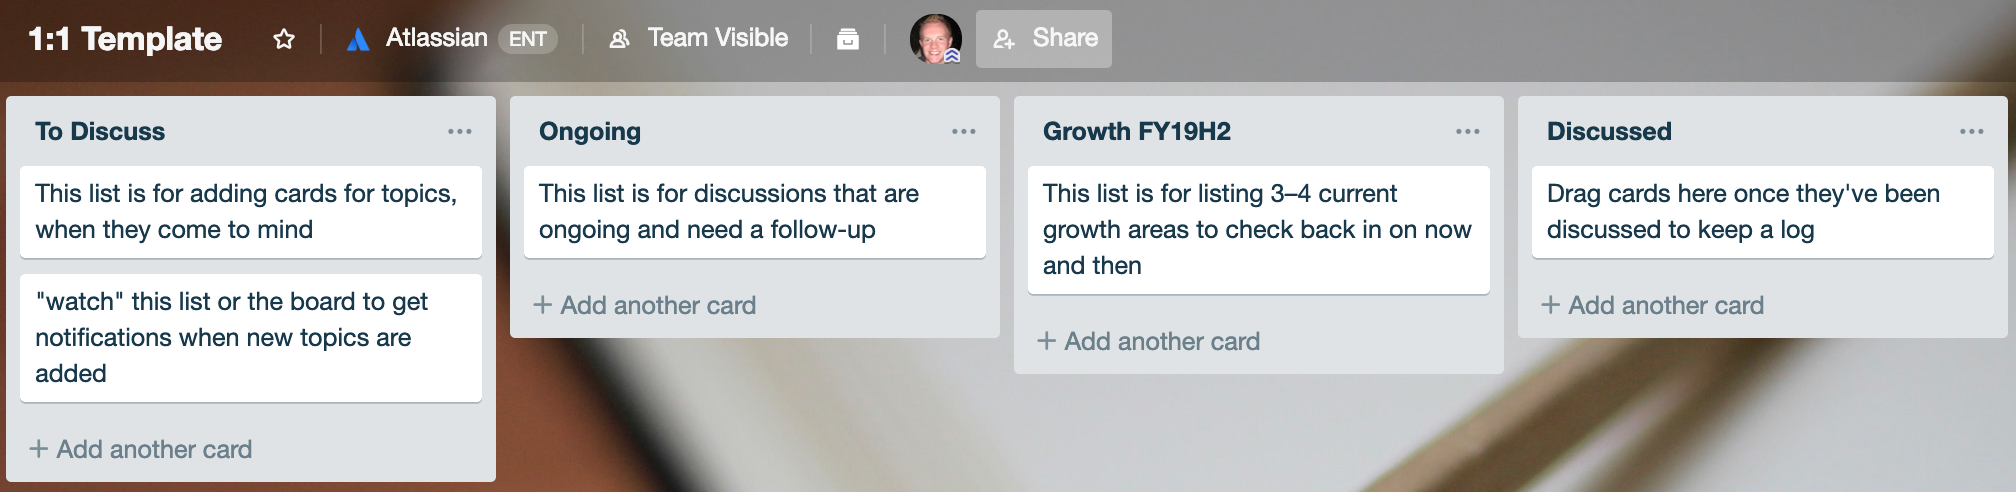 1:1 meeting board template in trello